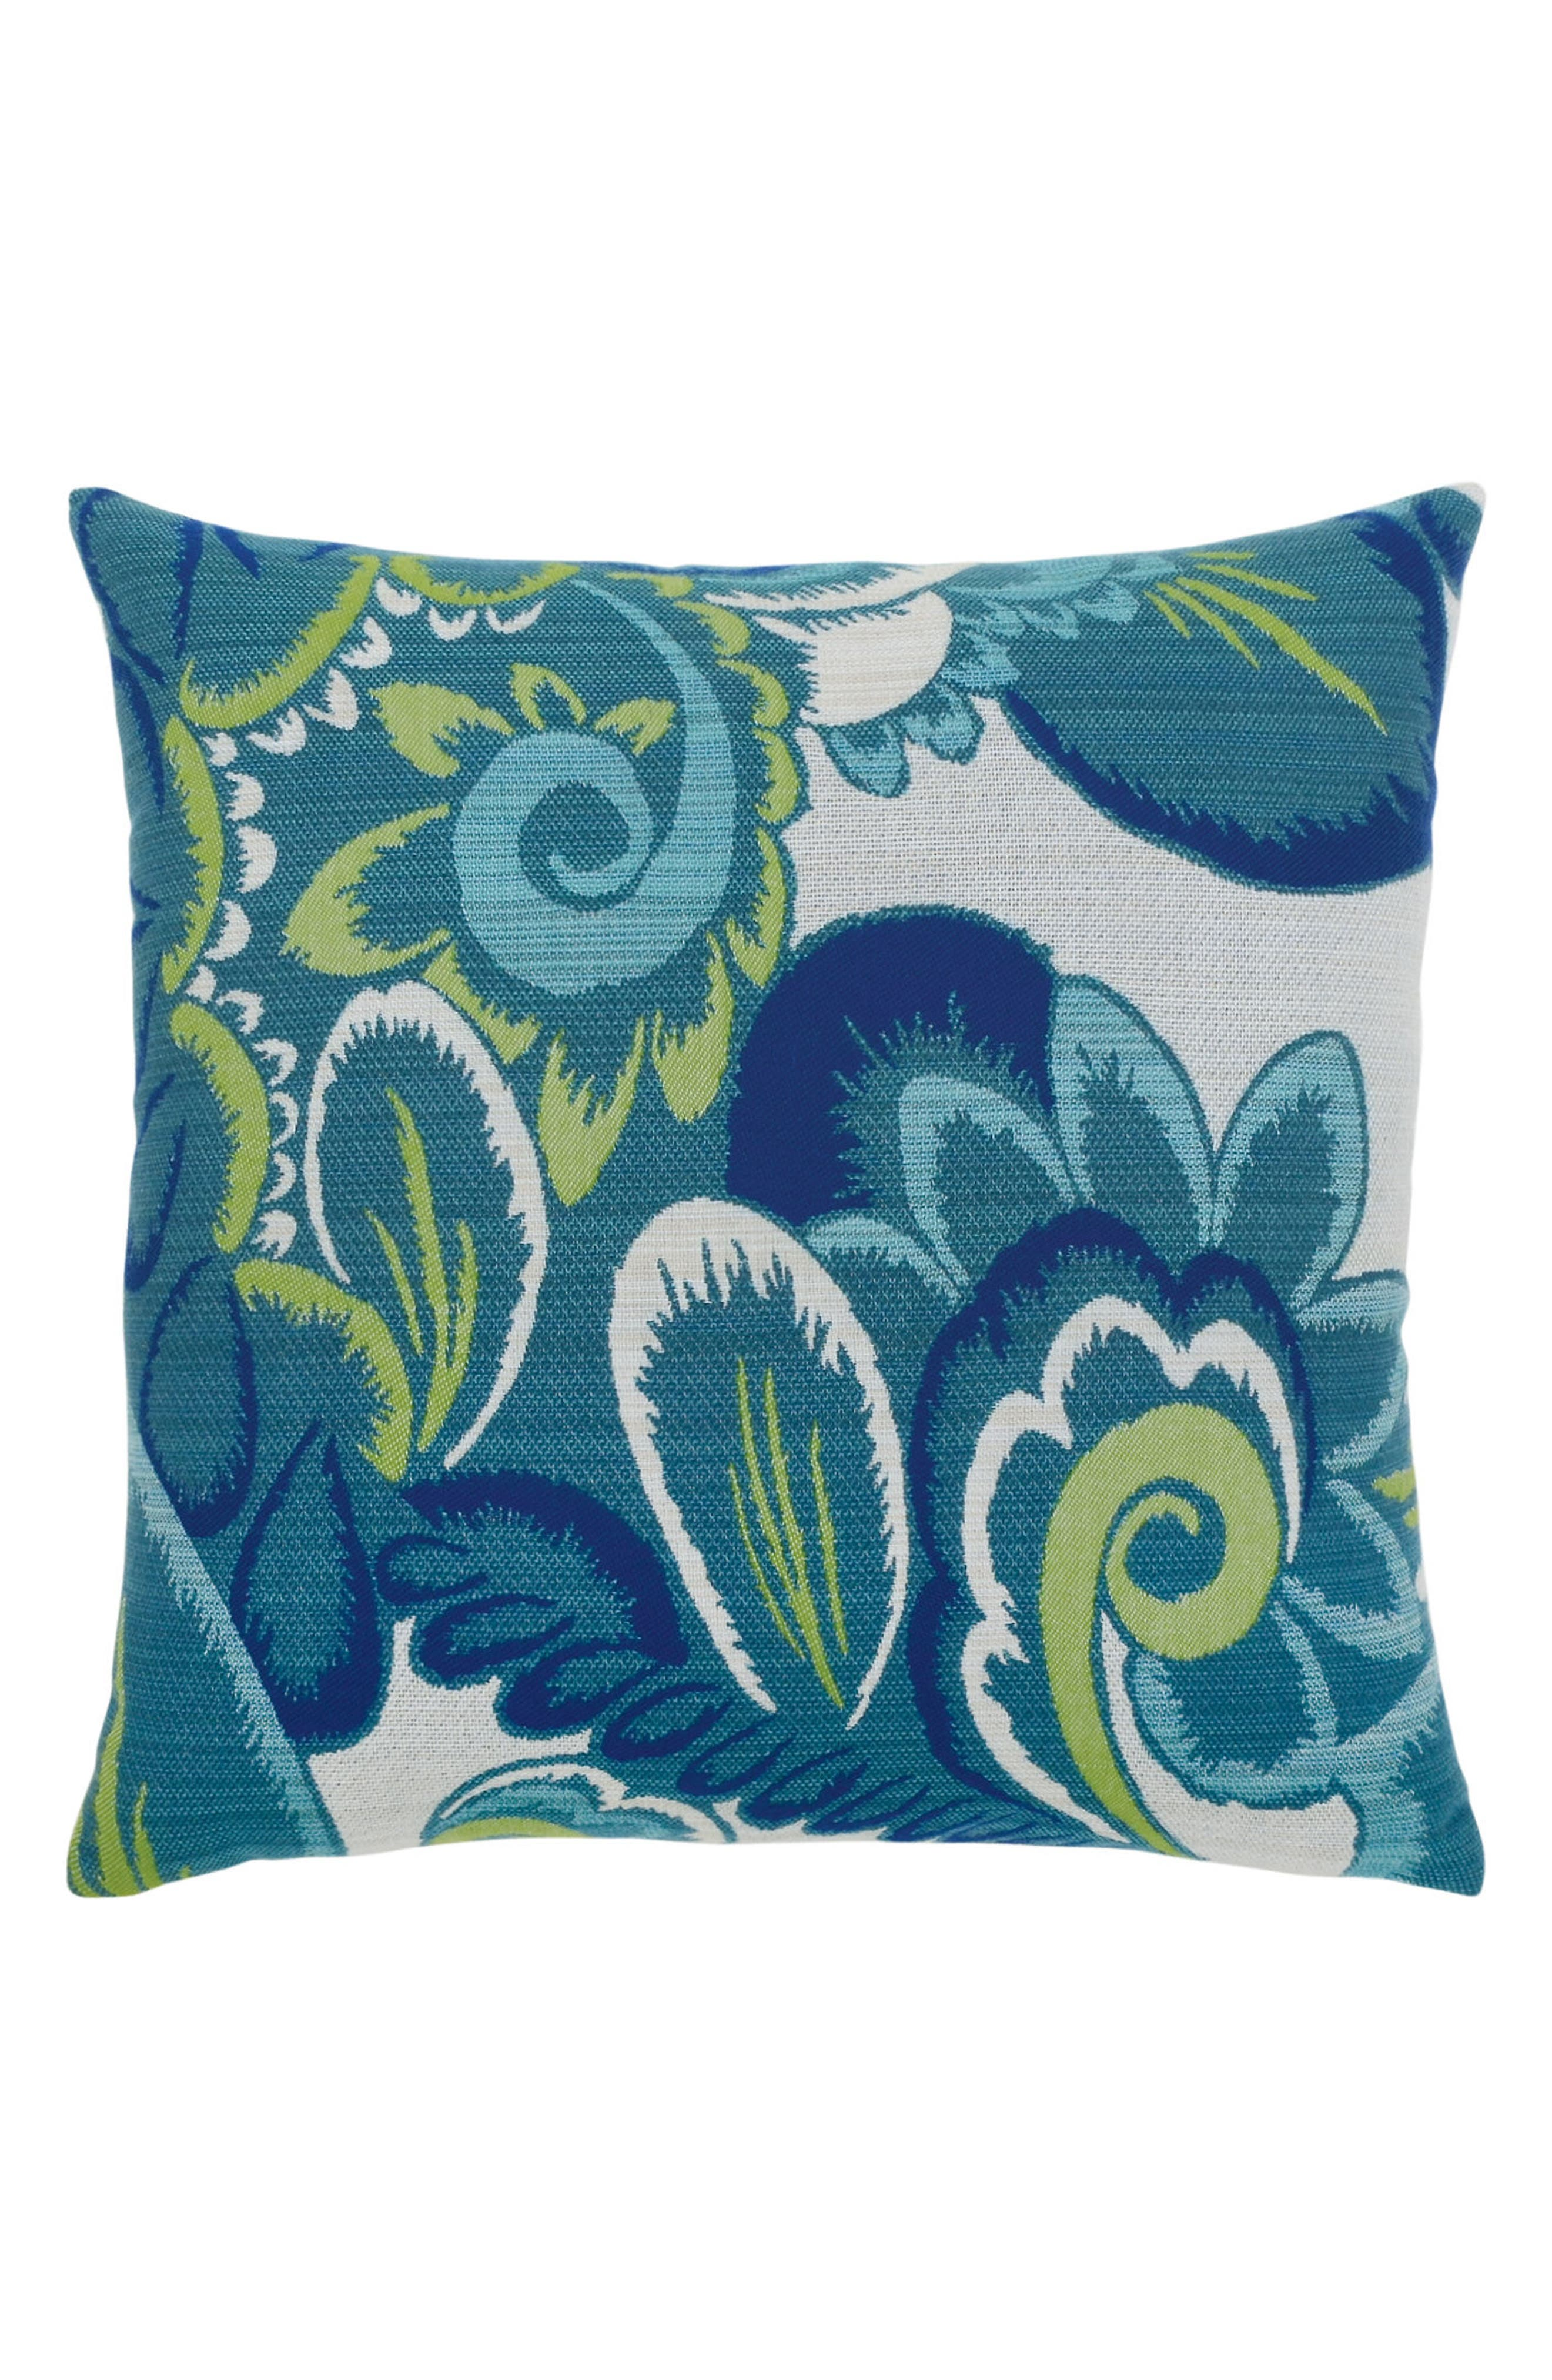 Floral Wave Indoor/Outdoor Accent Pillow,                         Main,                         color, Blue/ Green